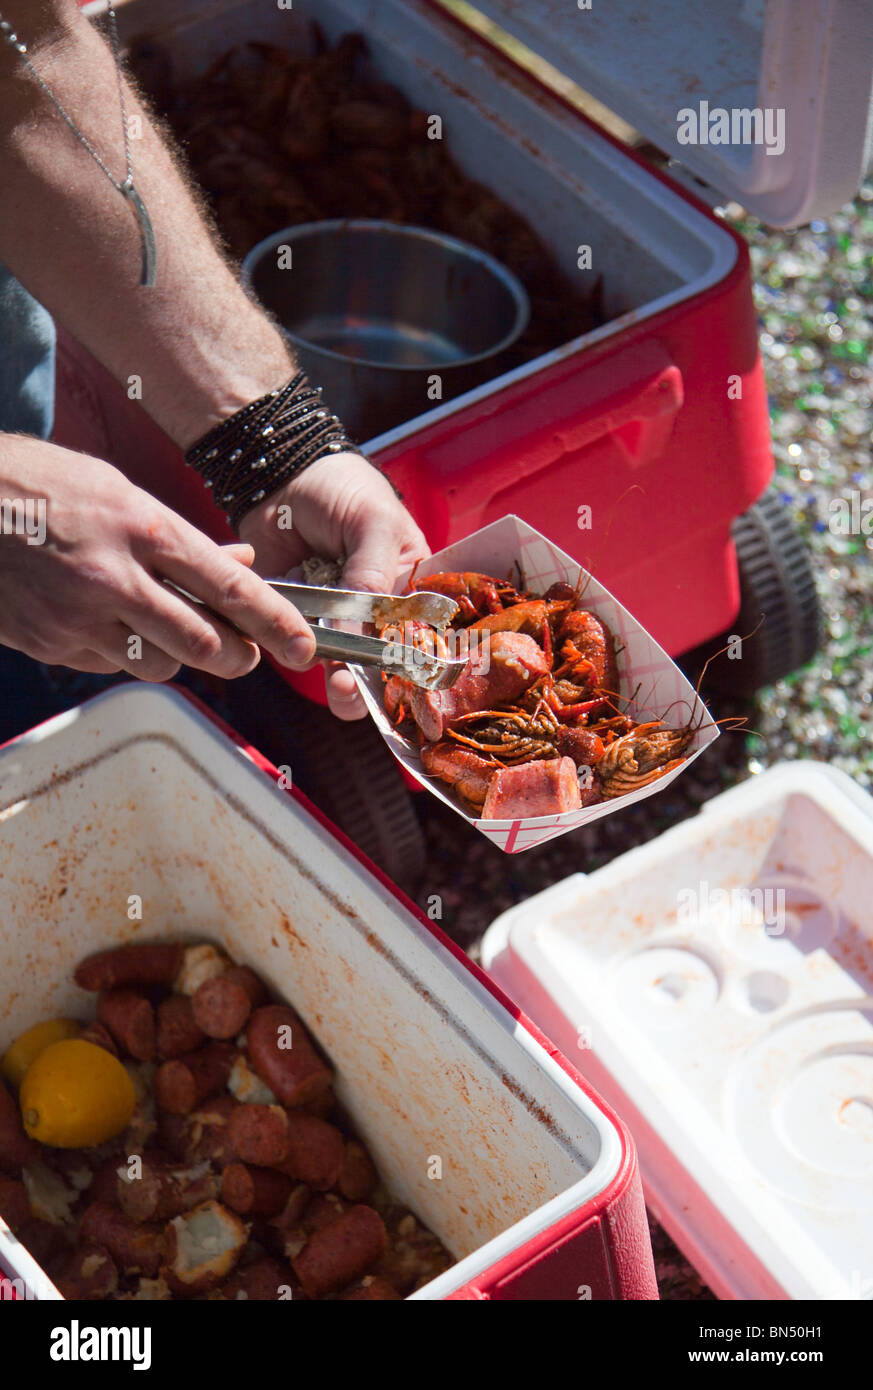 A Louisiana style crawfish boil in Austin, Texas - Stock Image